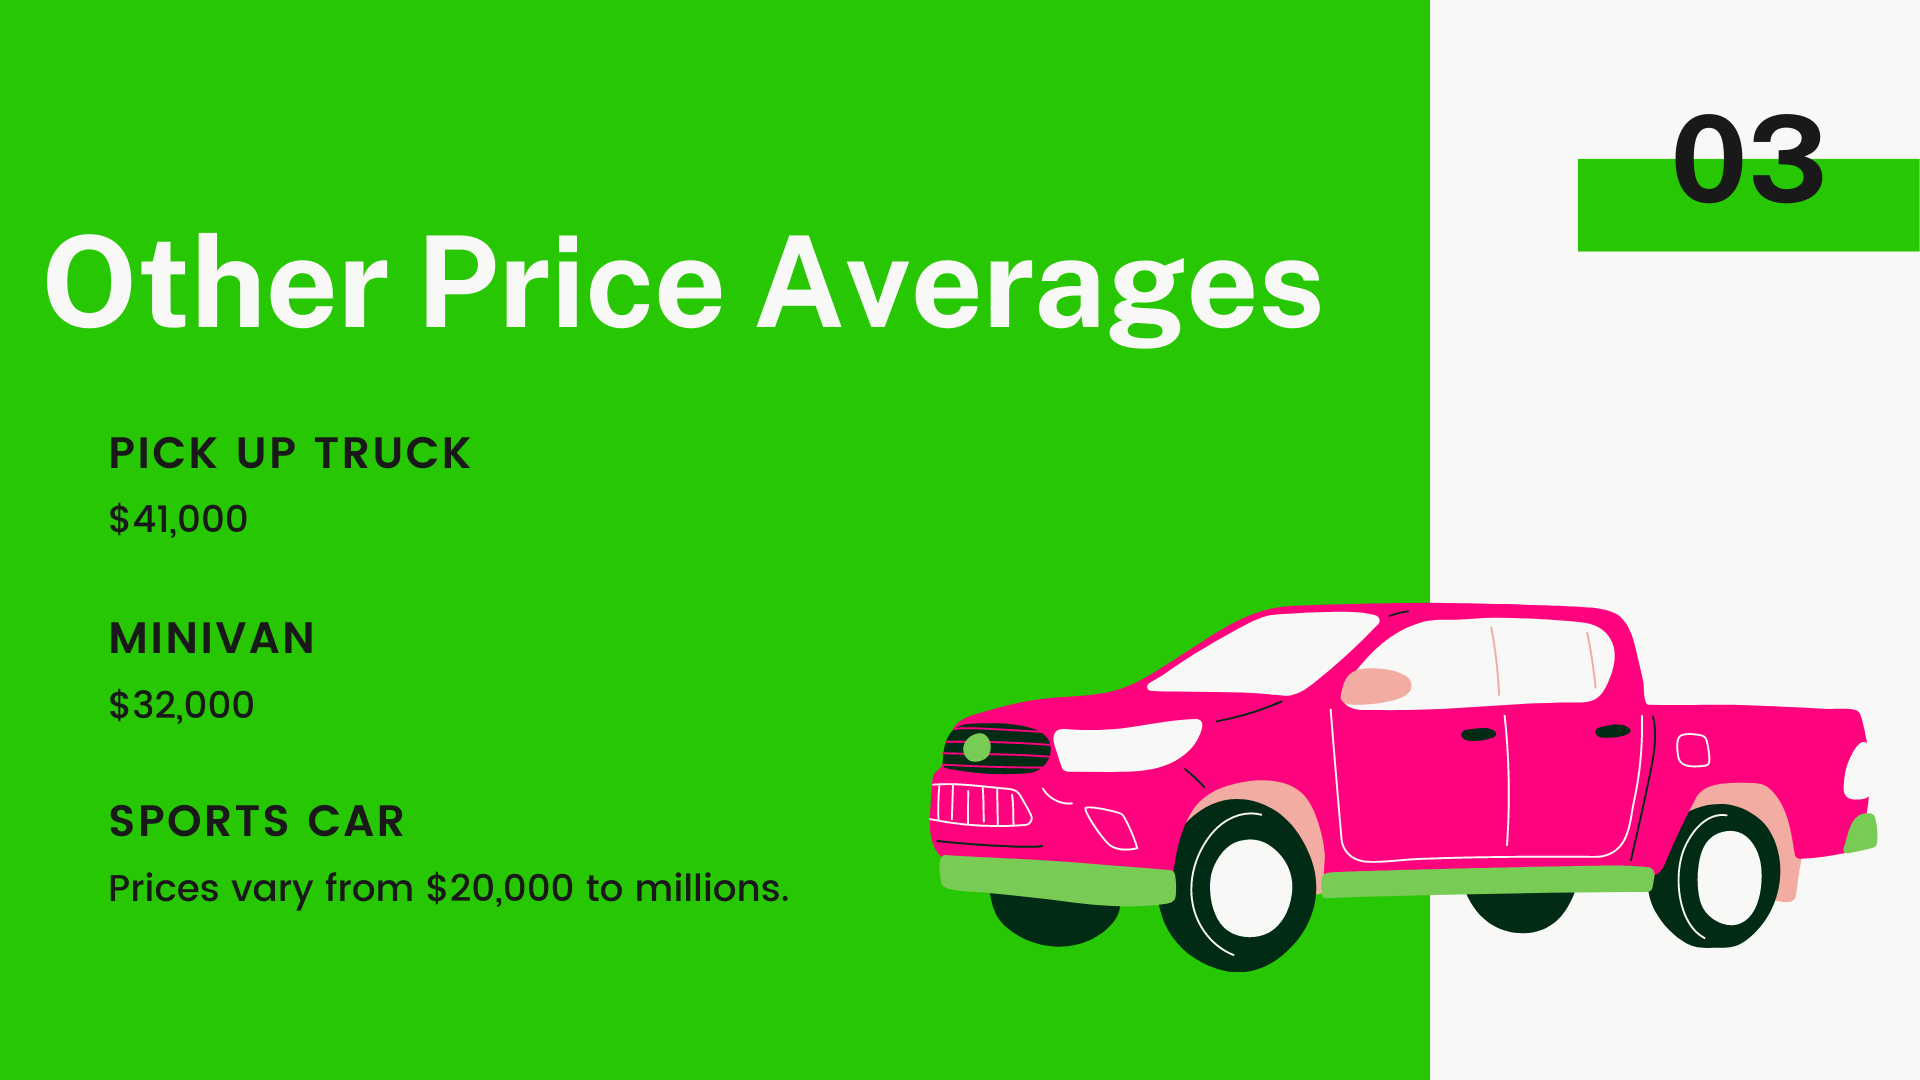 Pick Up Truck: $41,000. Minivan: $32,000. Sports Car: Prices vary from $20,000 to millions.